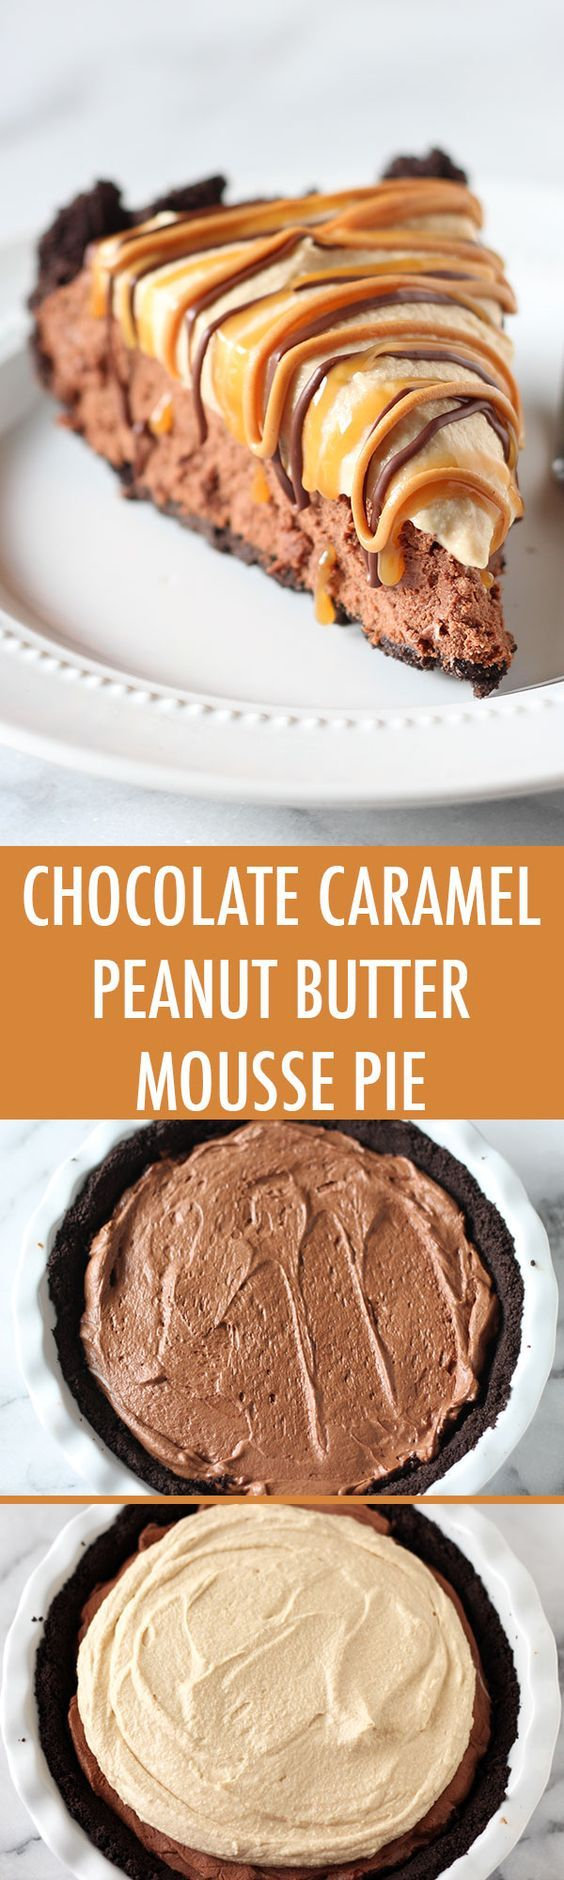 This is pure decadence! Chocolate Peanut Butter Caramel Mousse Pie